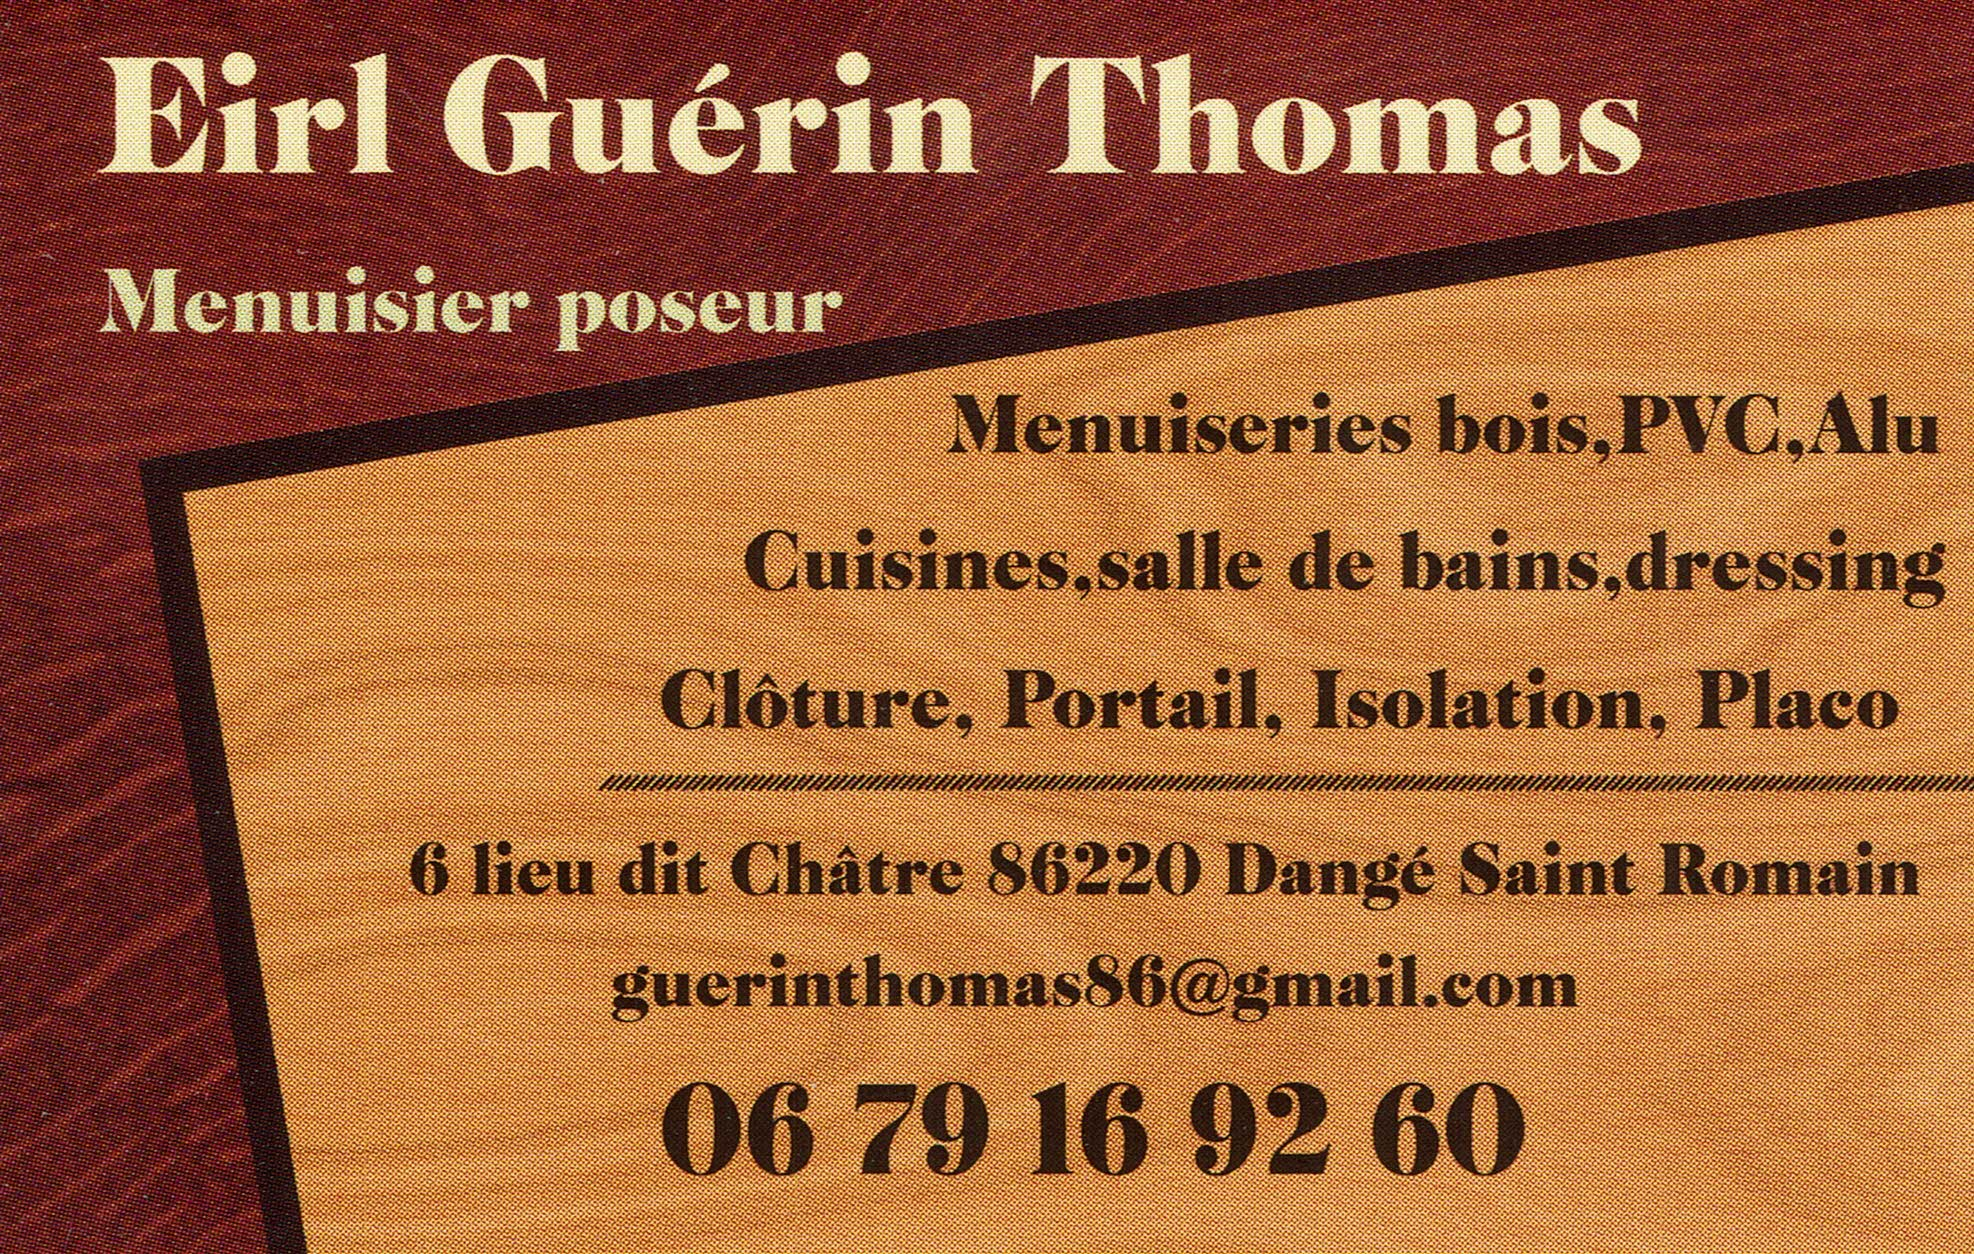 EIRL GUERIN THOMAS Dange Saint Romain